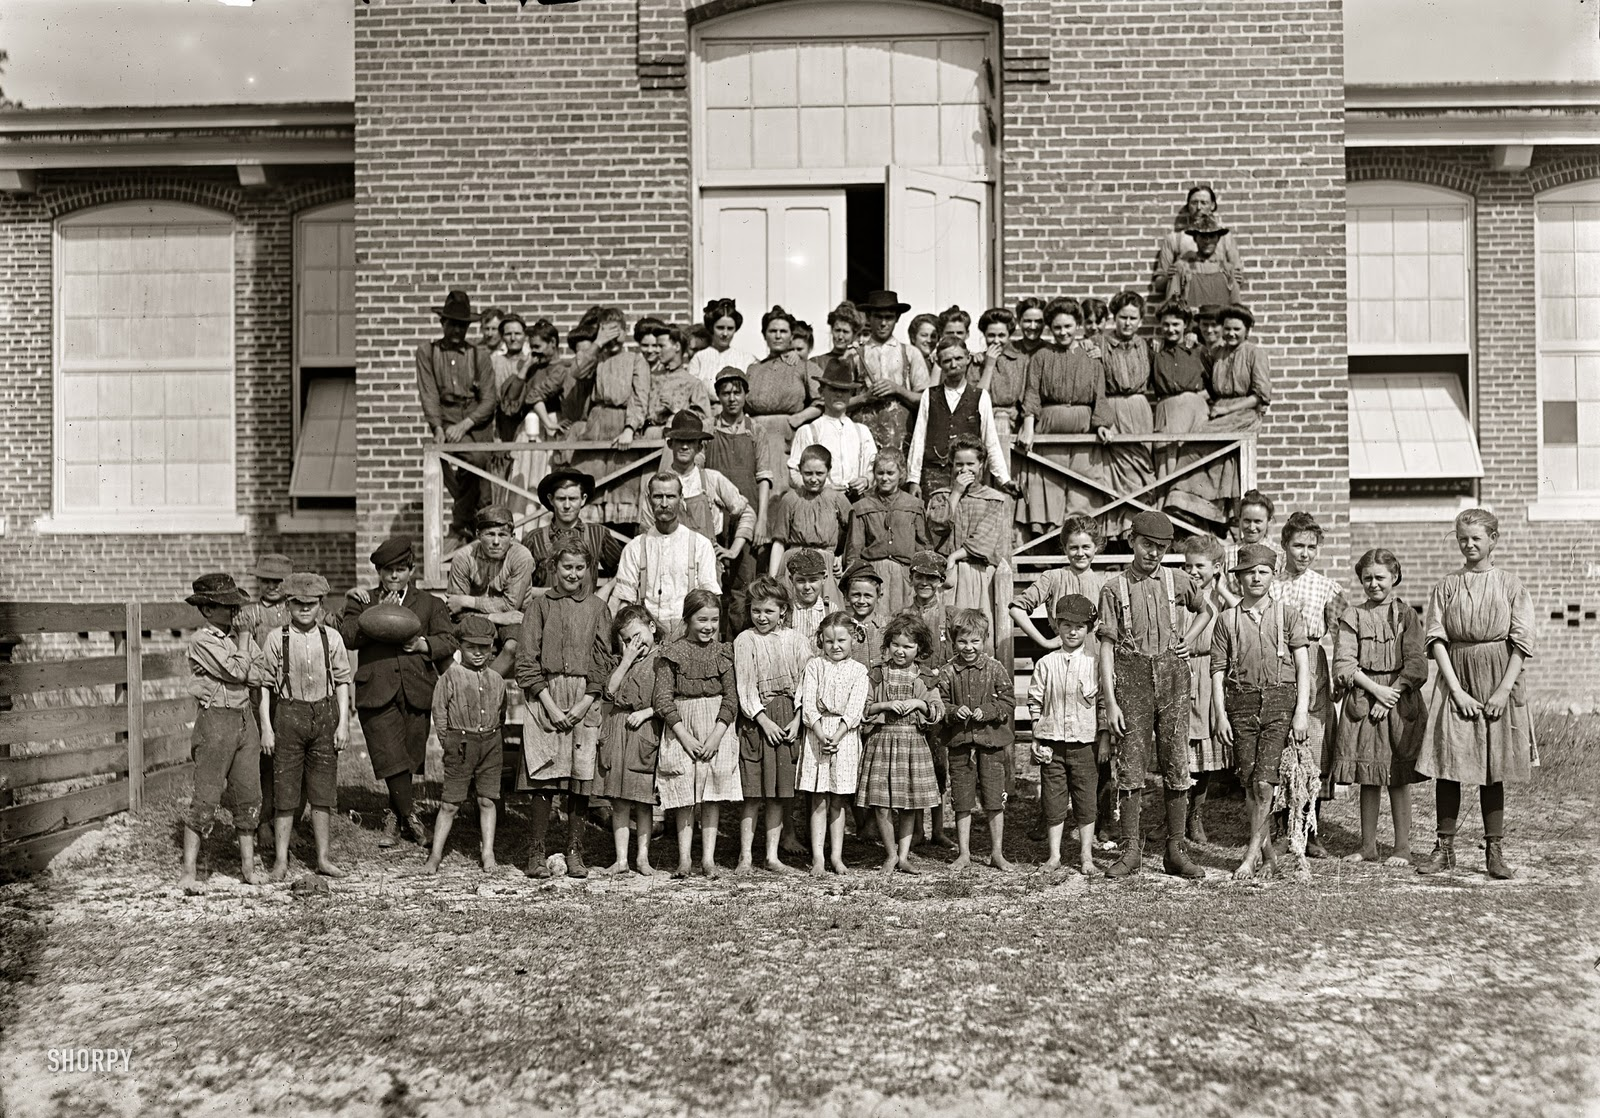 labor reform in the 1800 s The labor law reform we need rand wilson i like the analysis and rand's thinking on this issue as another way to begin labor's re-connect with unorganized workers, who organized labor has basically lost touch with.